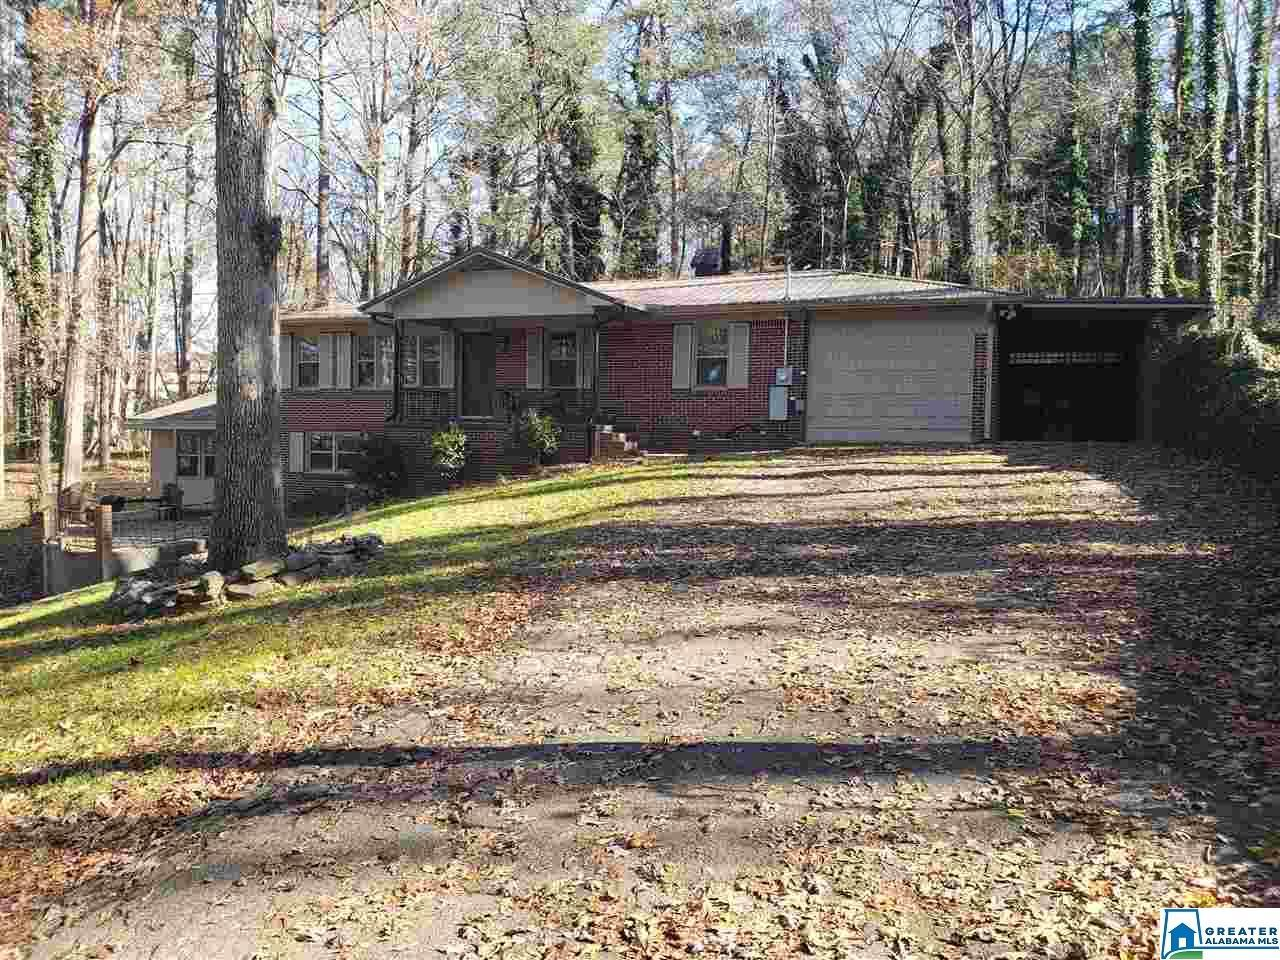 145 VIRGINIA ST, Oneonta, AL 35121 - MLS#: 1270735